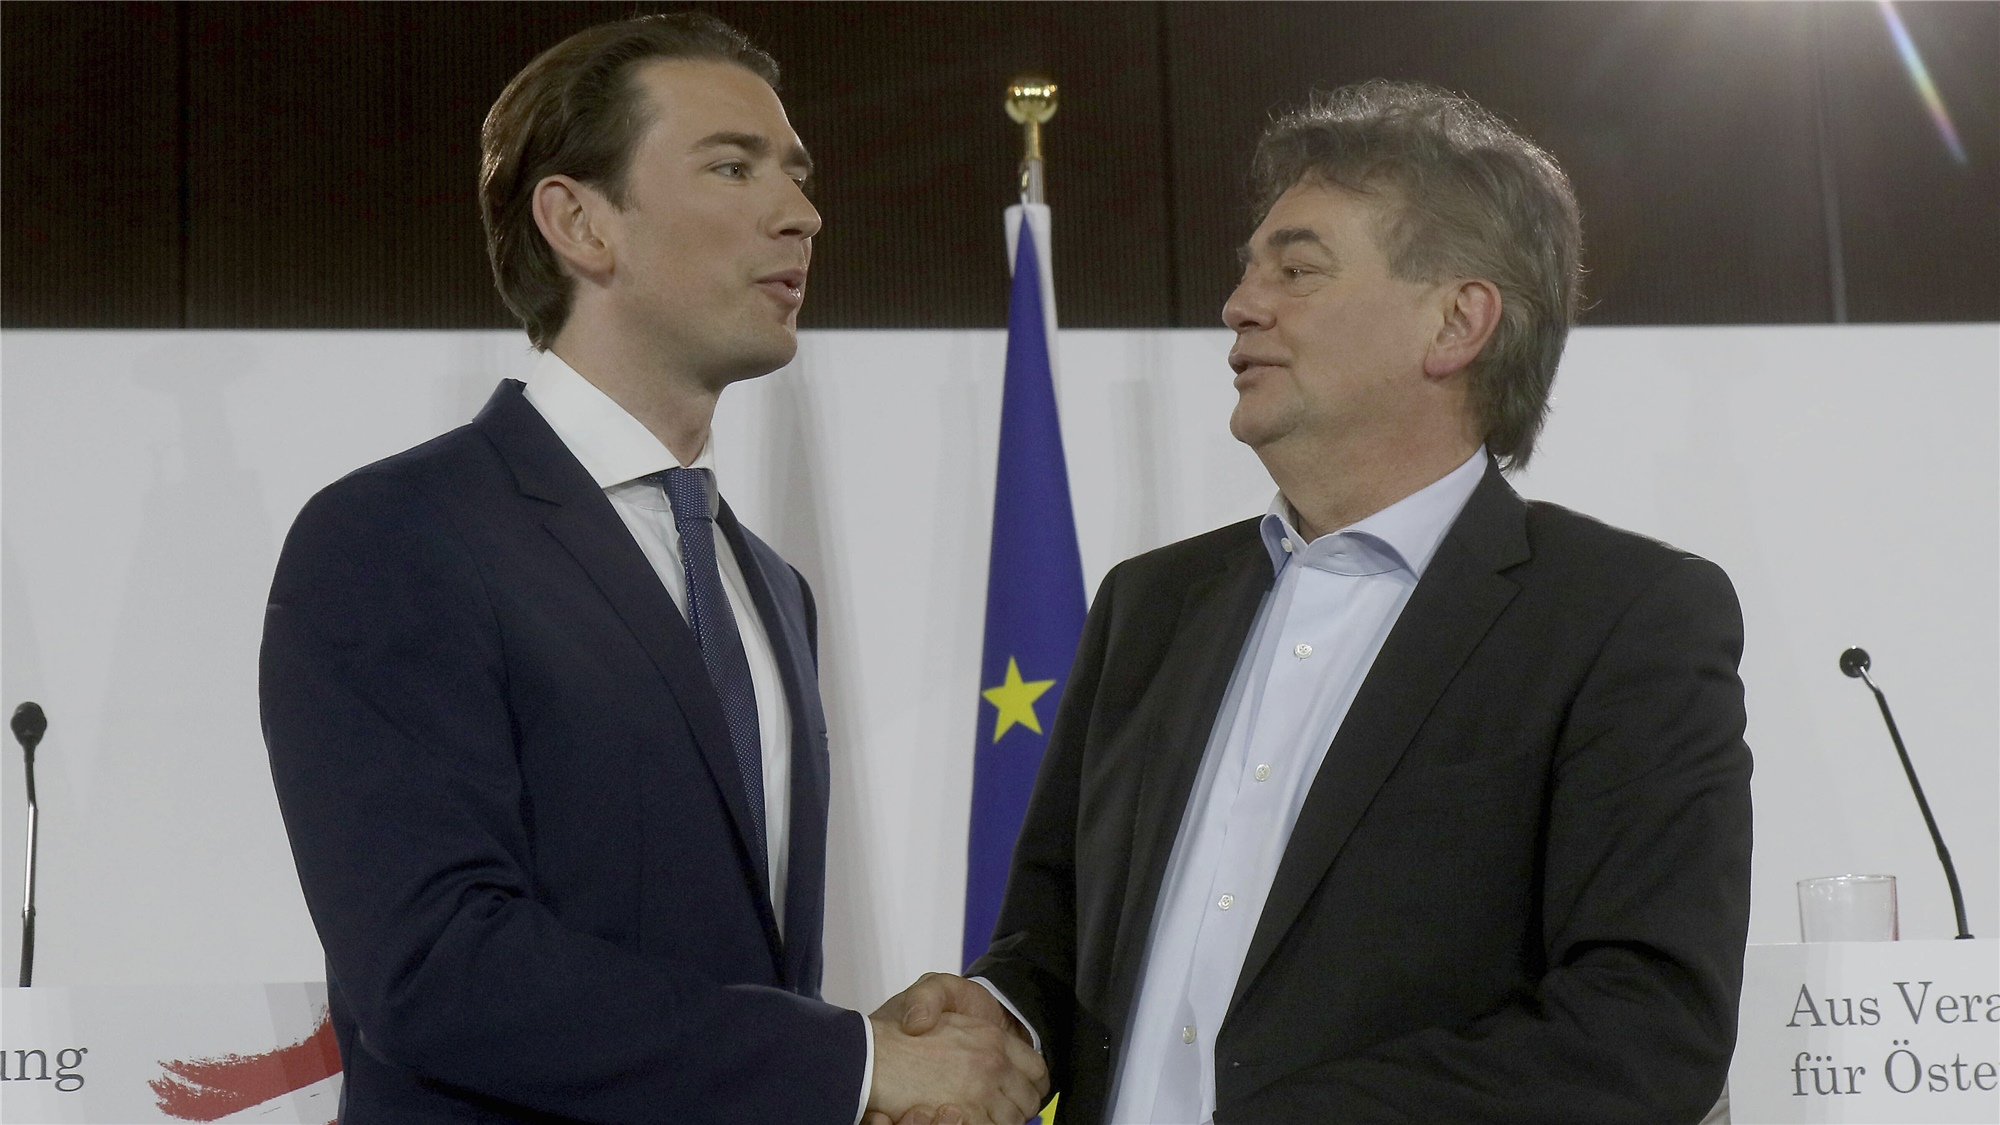 Austria's Conservative party and the Greens form new coalition government